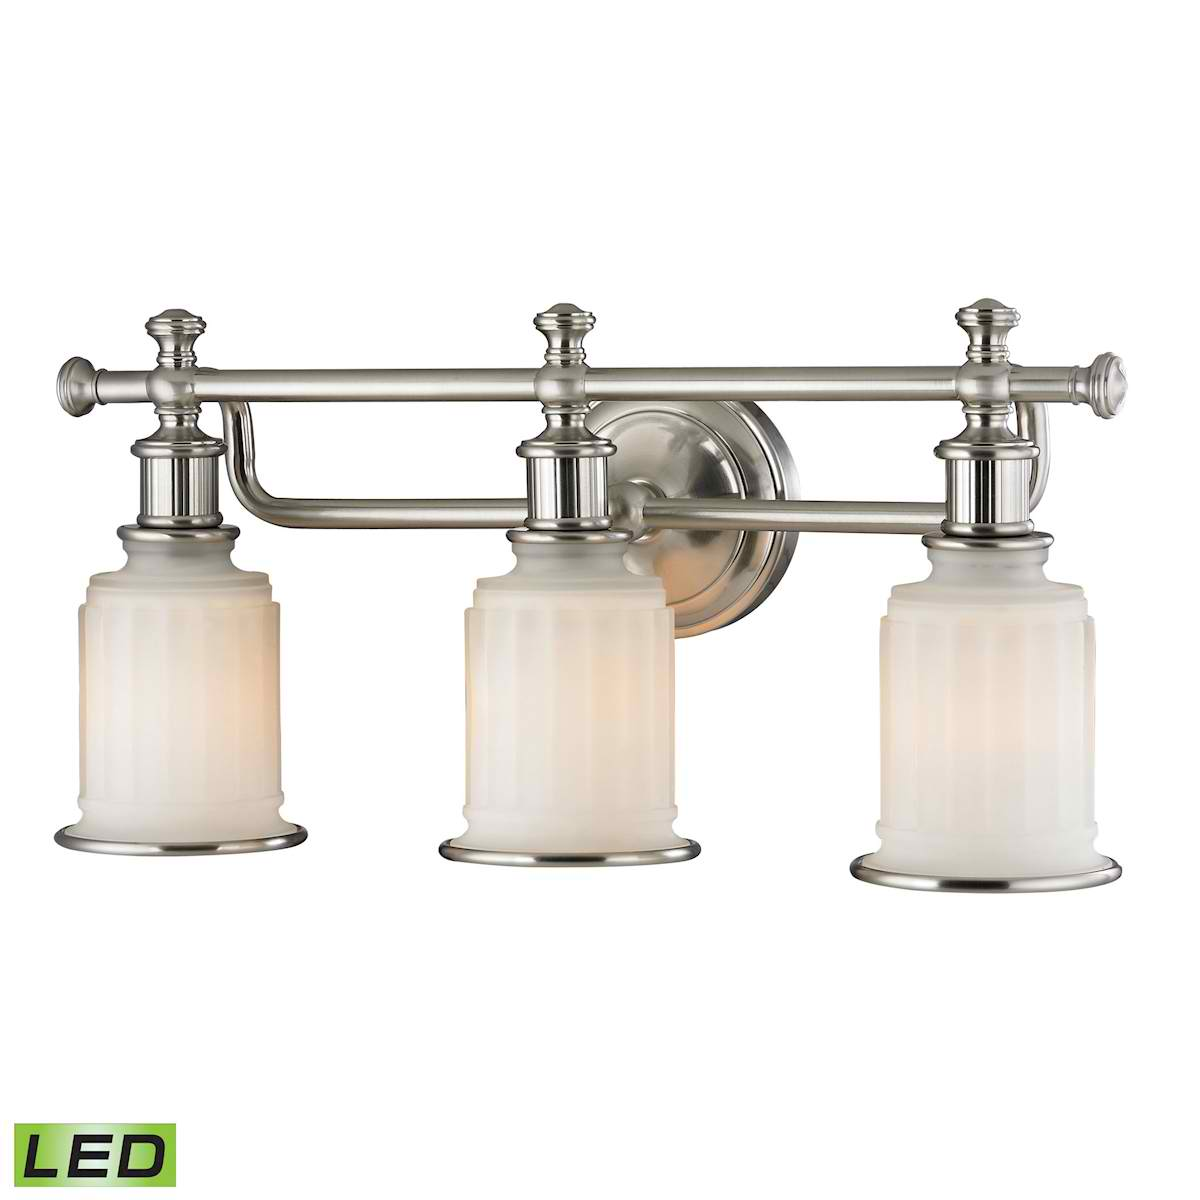 Acadia Collection 3 Light Bath in Brushed Nickel - LED, 800 Lumens (2400 Lumens Total) with Full Scale